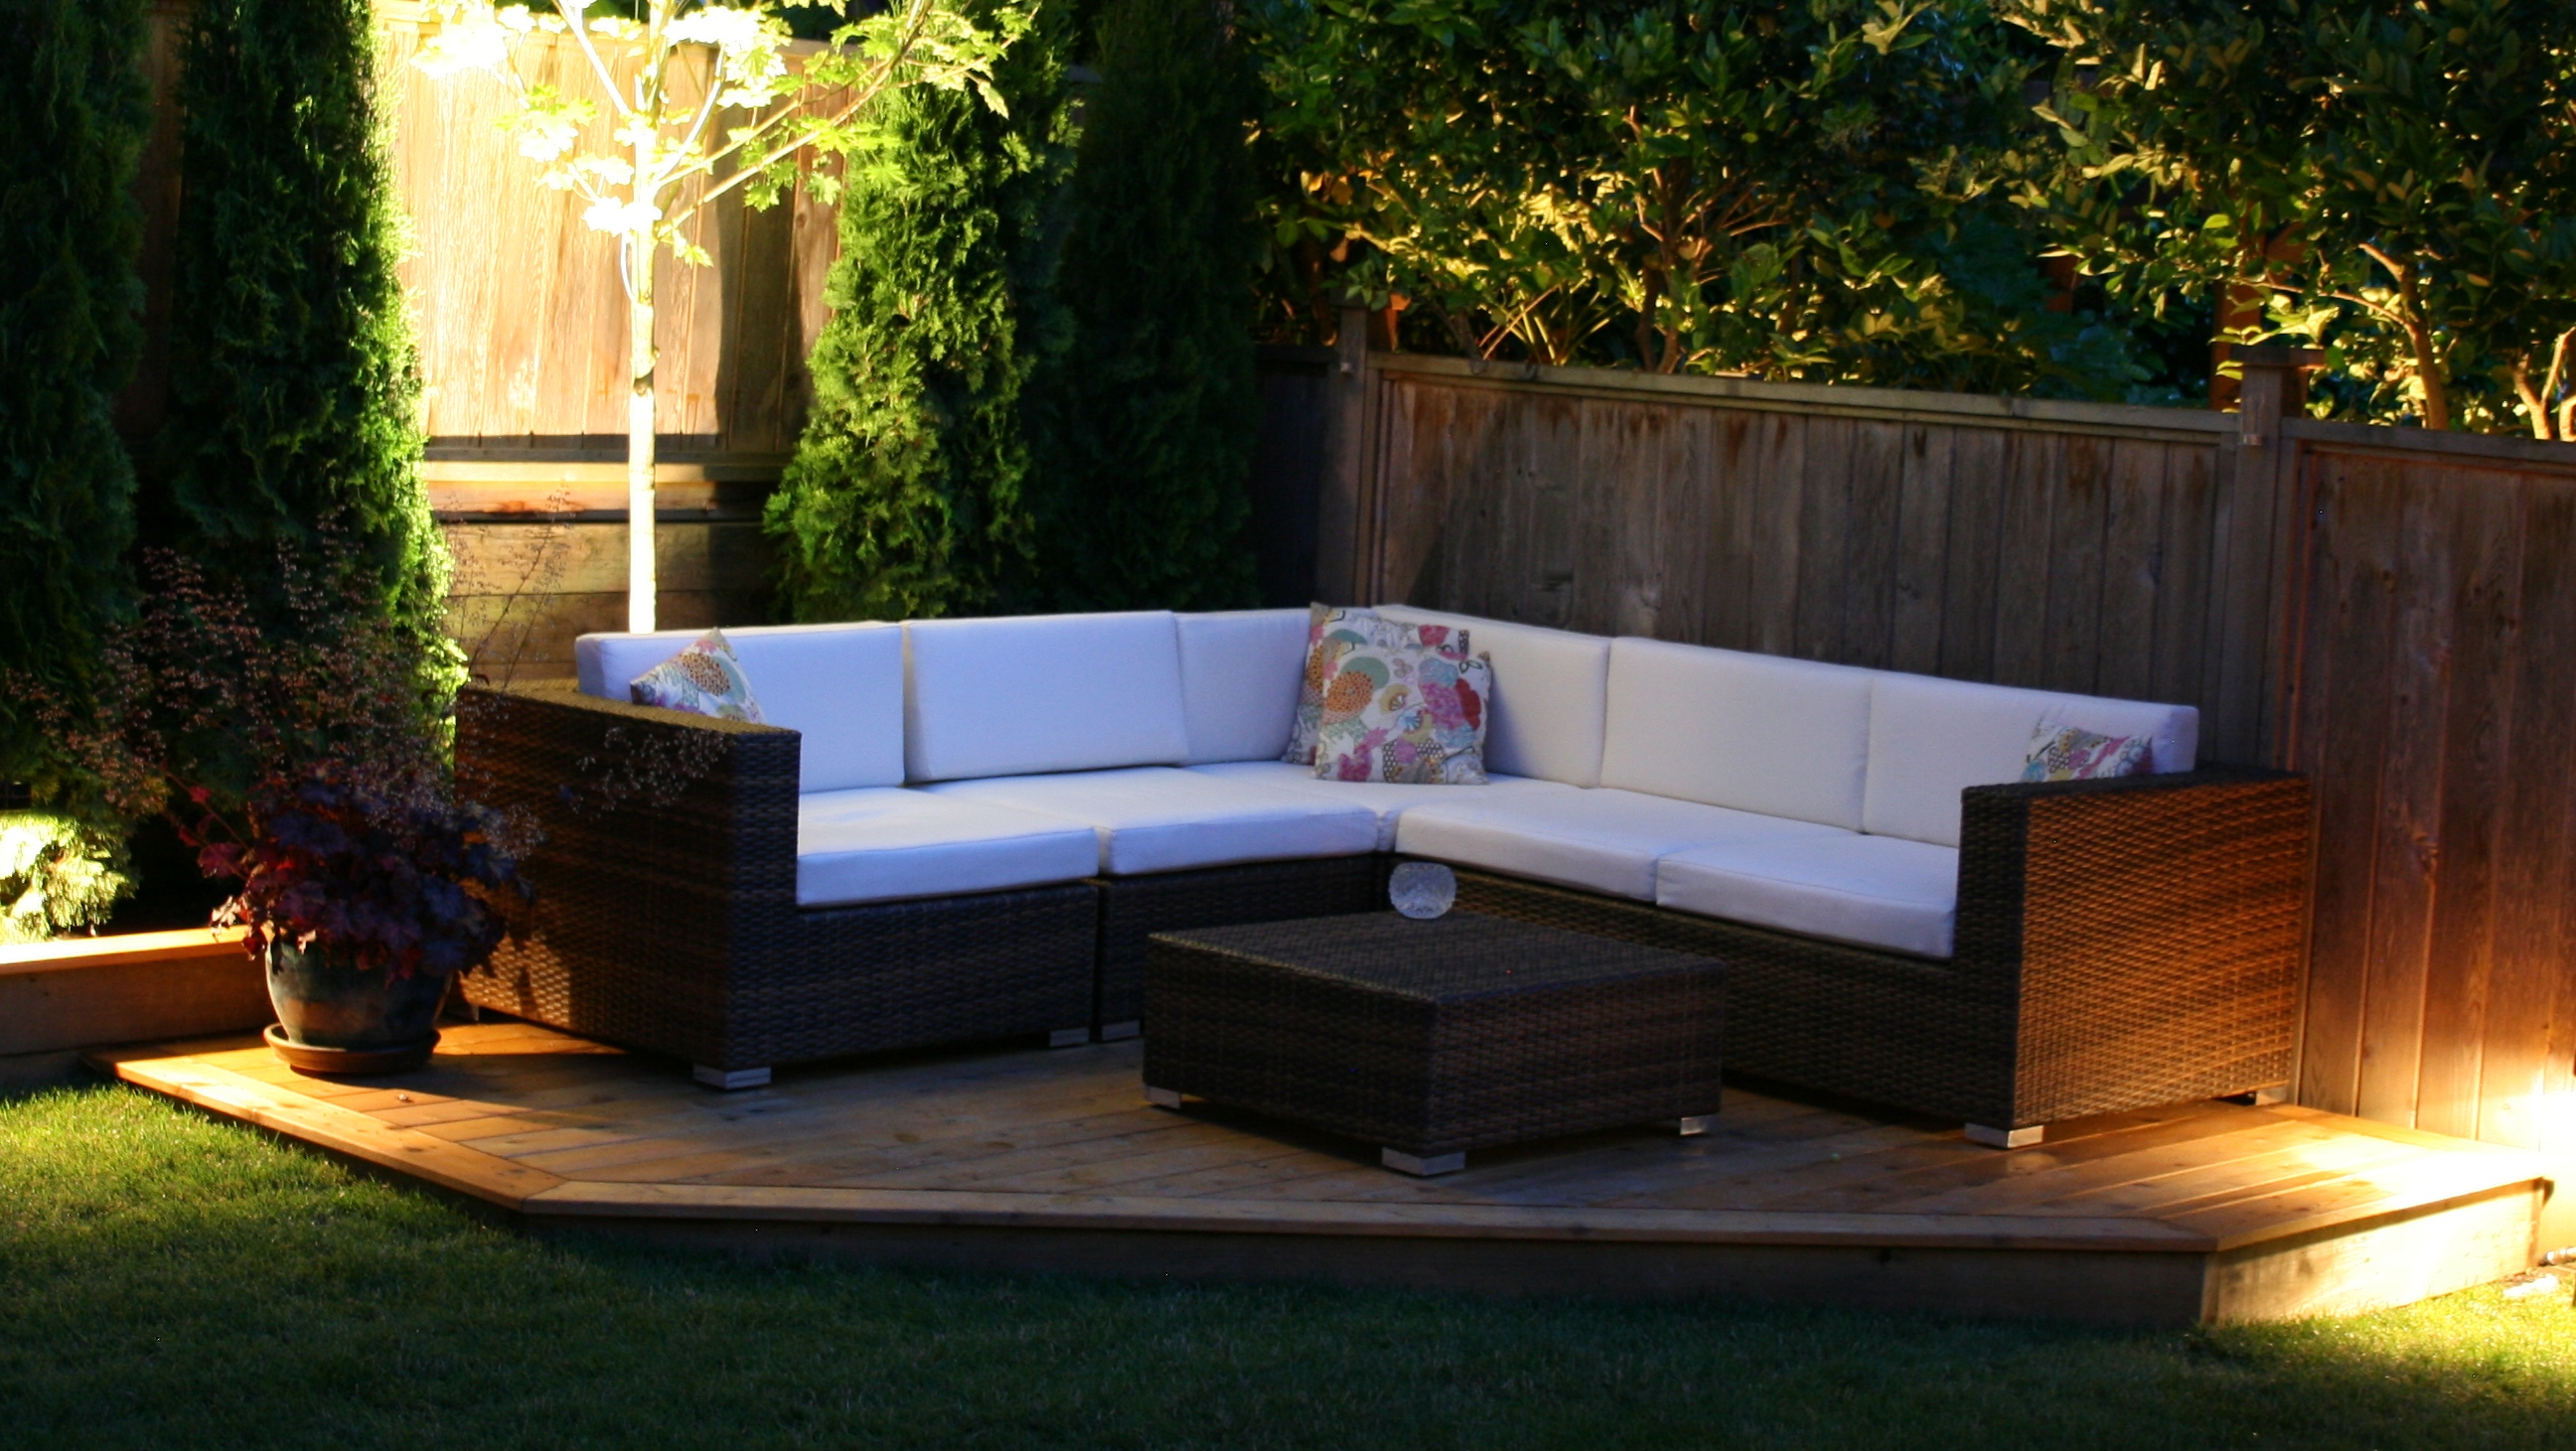 The kitsilano outdoor patio sectional